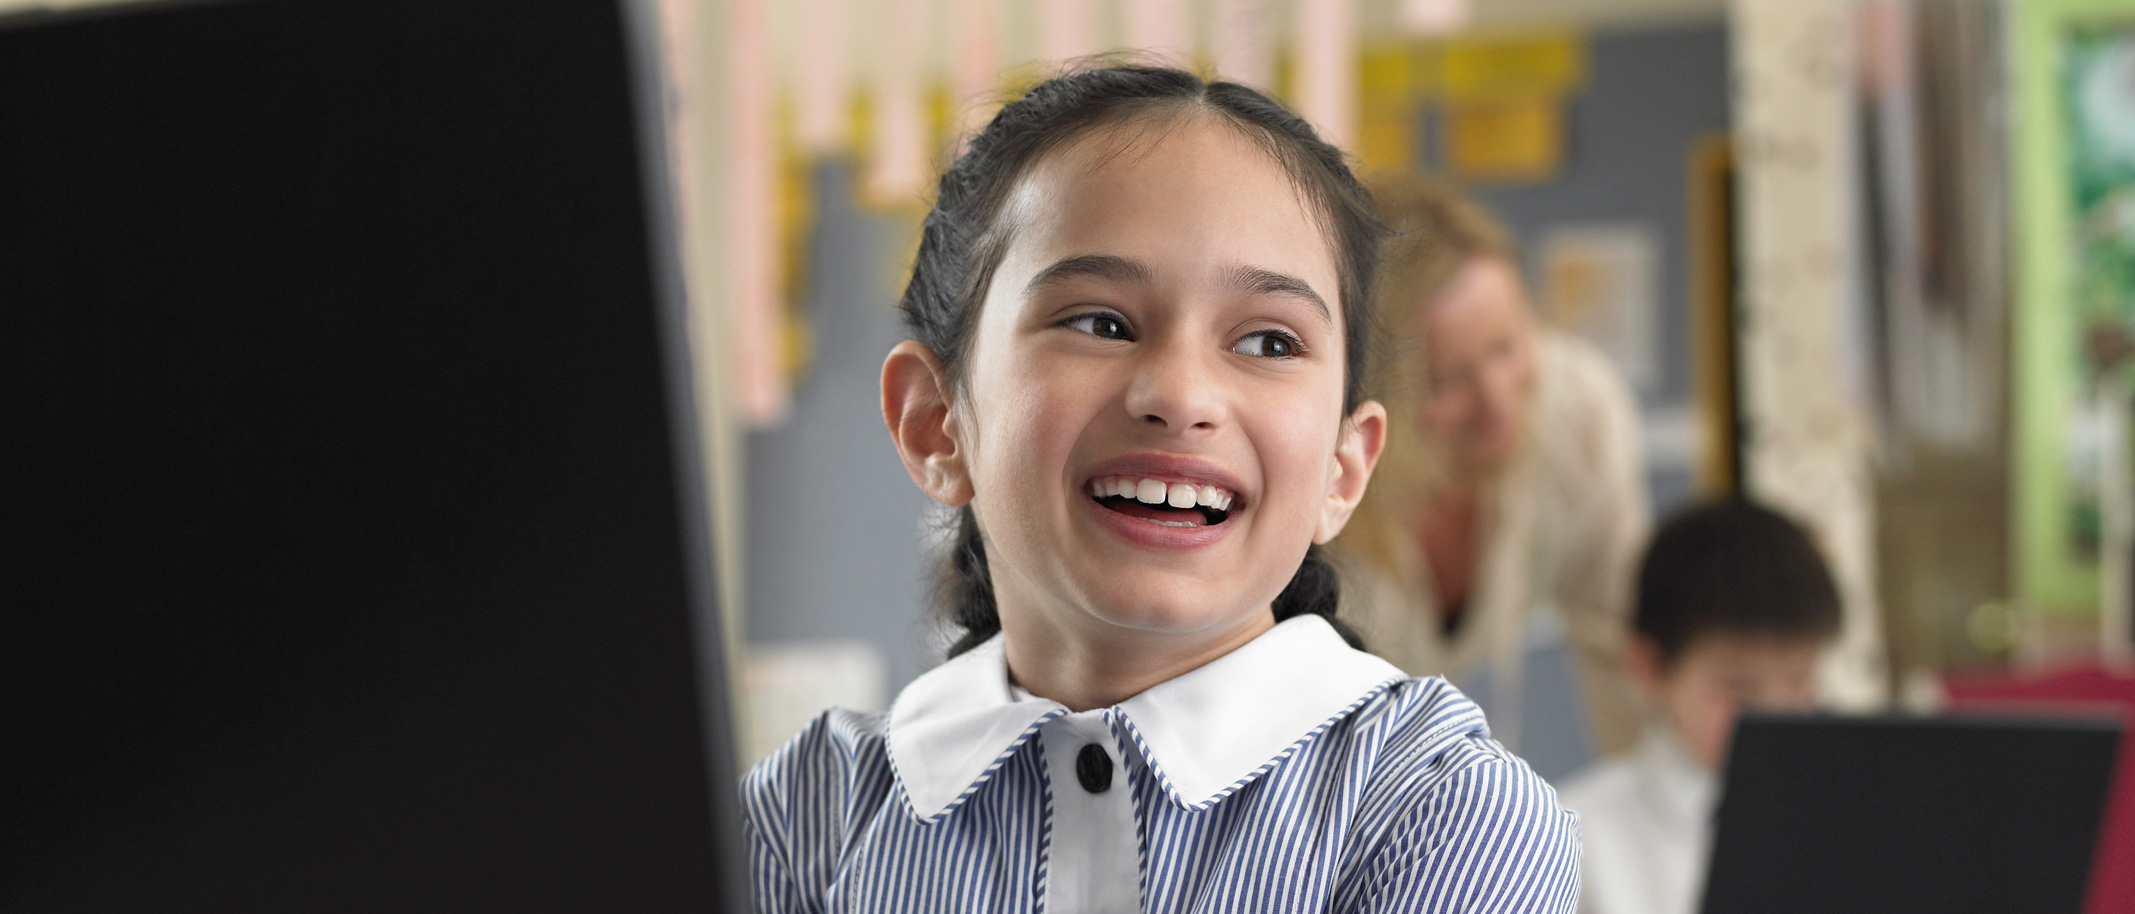 smiling-young-school-girl2160